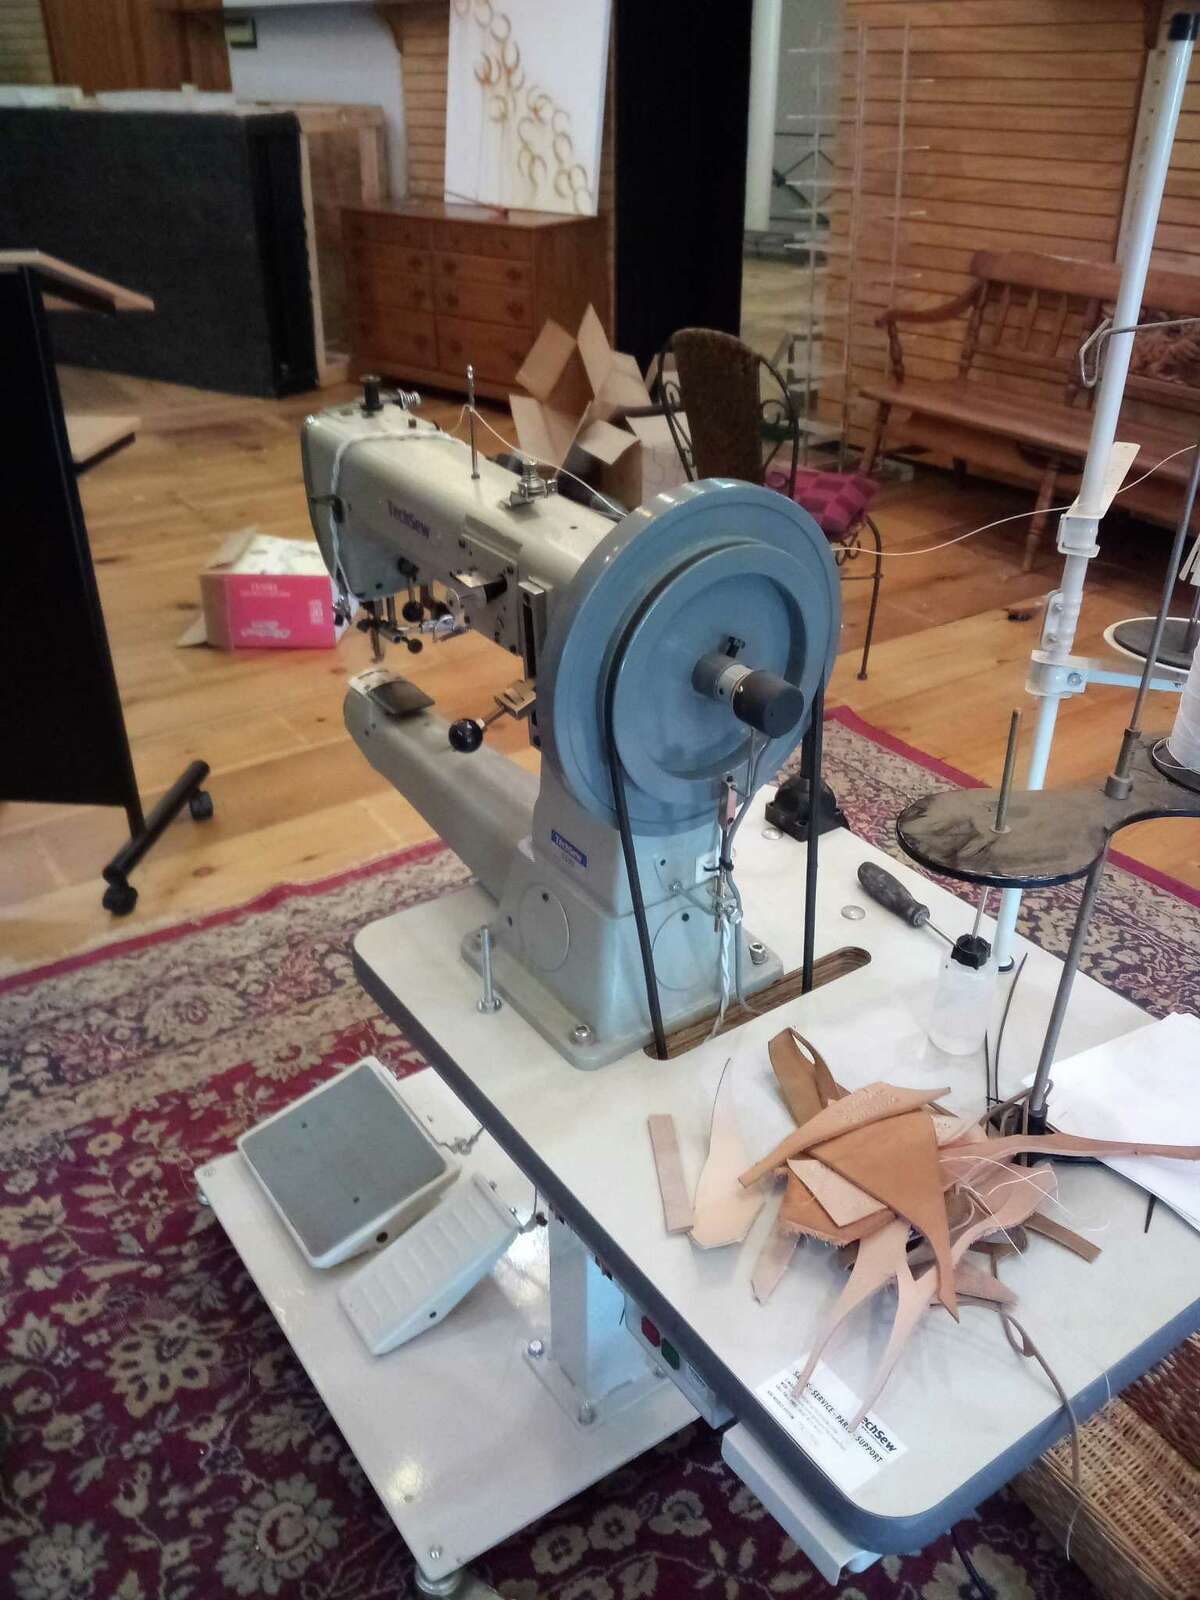 John Noelke's plans to use the Howard building on Main Street as a bookstore and art gallery is moving forward, with an opening planned for September. Pictured is a leathercraft sewing machine, which was recently donated.